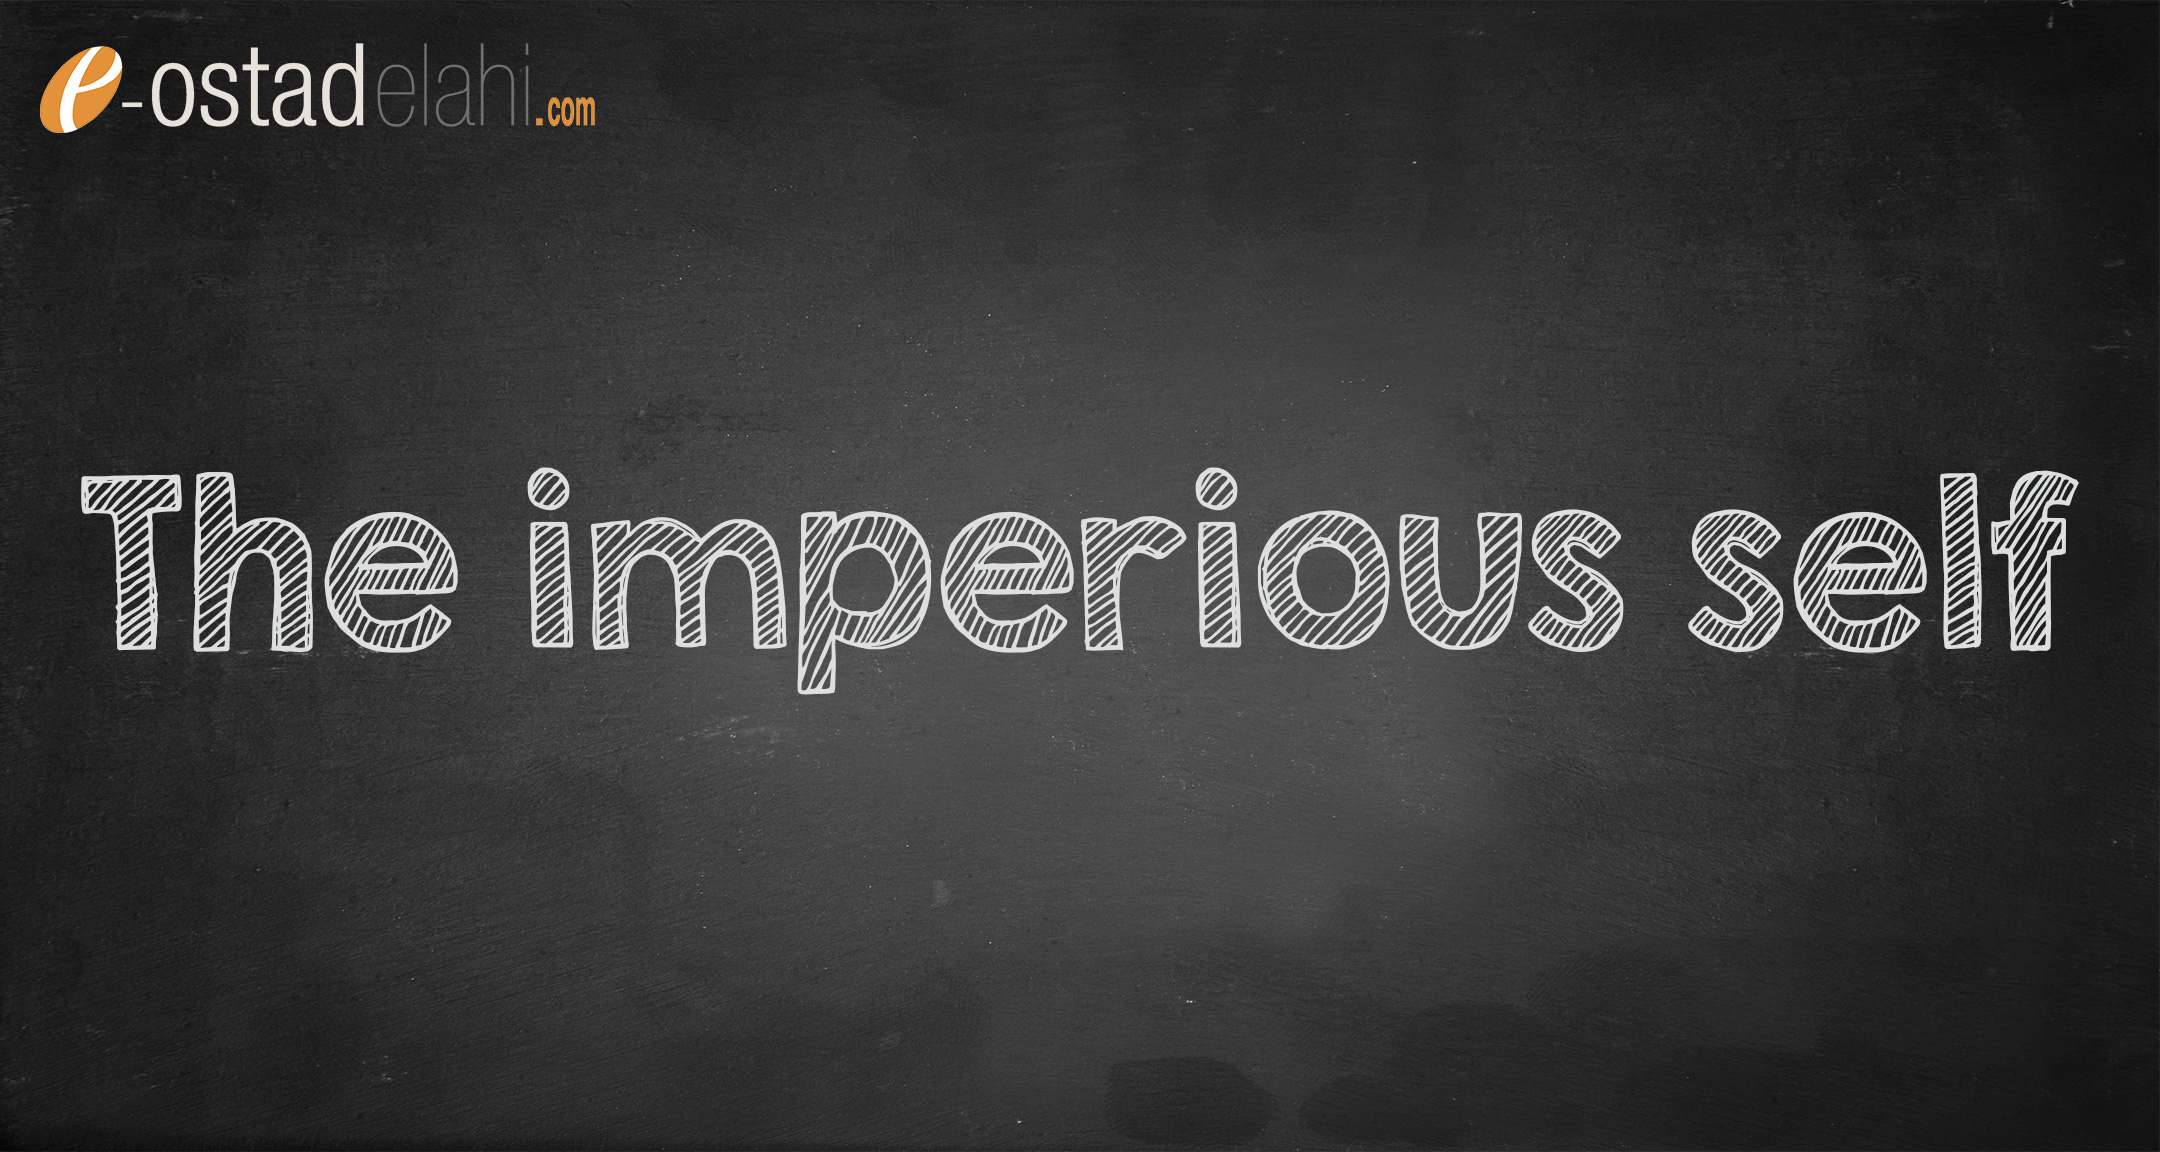 The imperious self